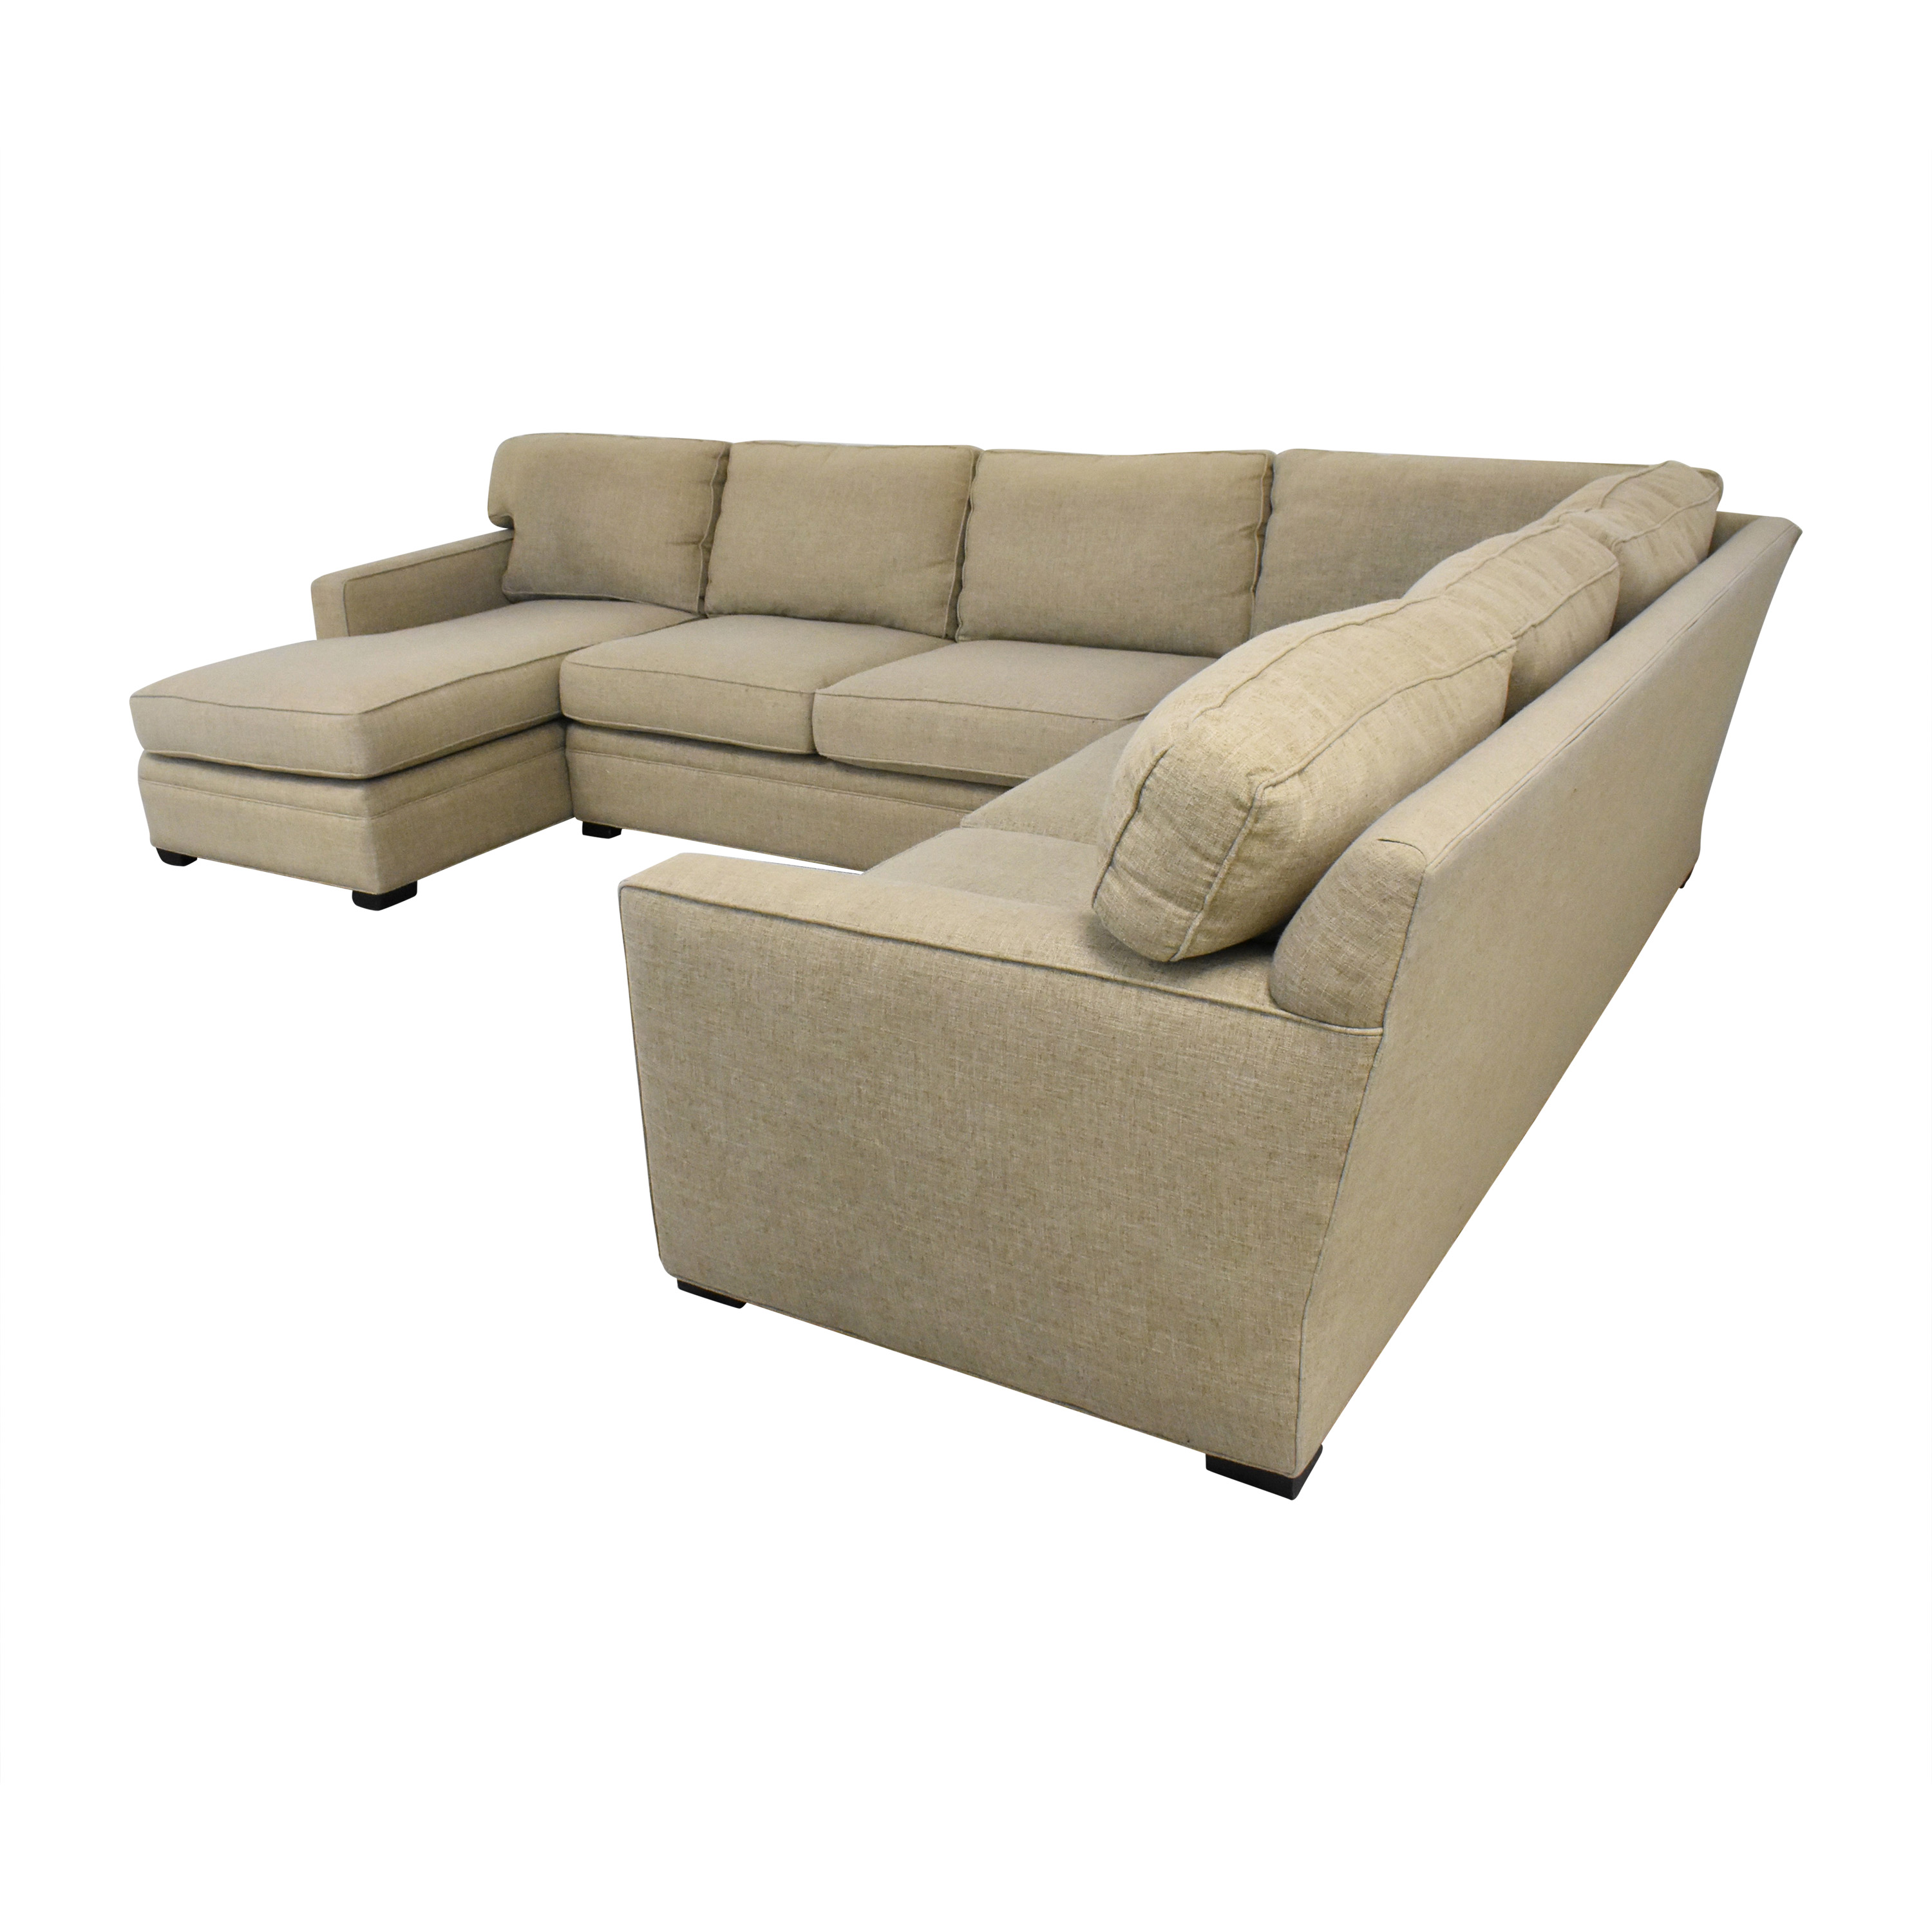 shop Lillian August Lillian August L Shaped Sectional Sofa with Chaise online